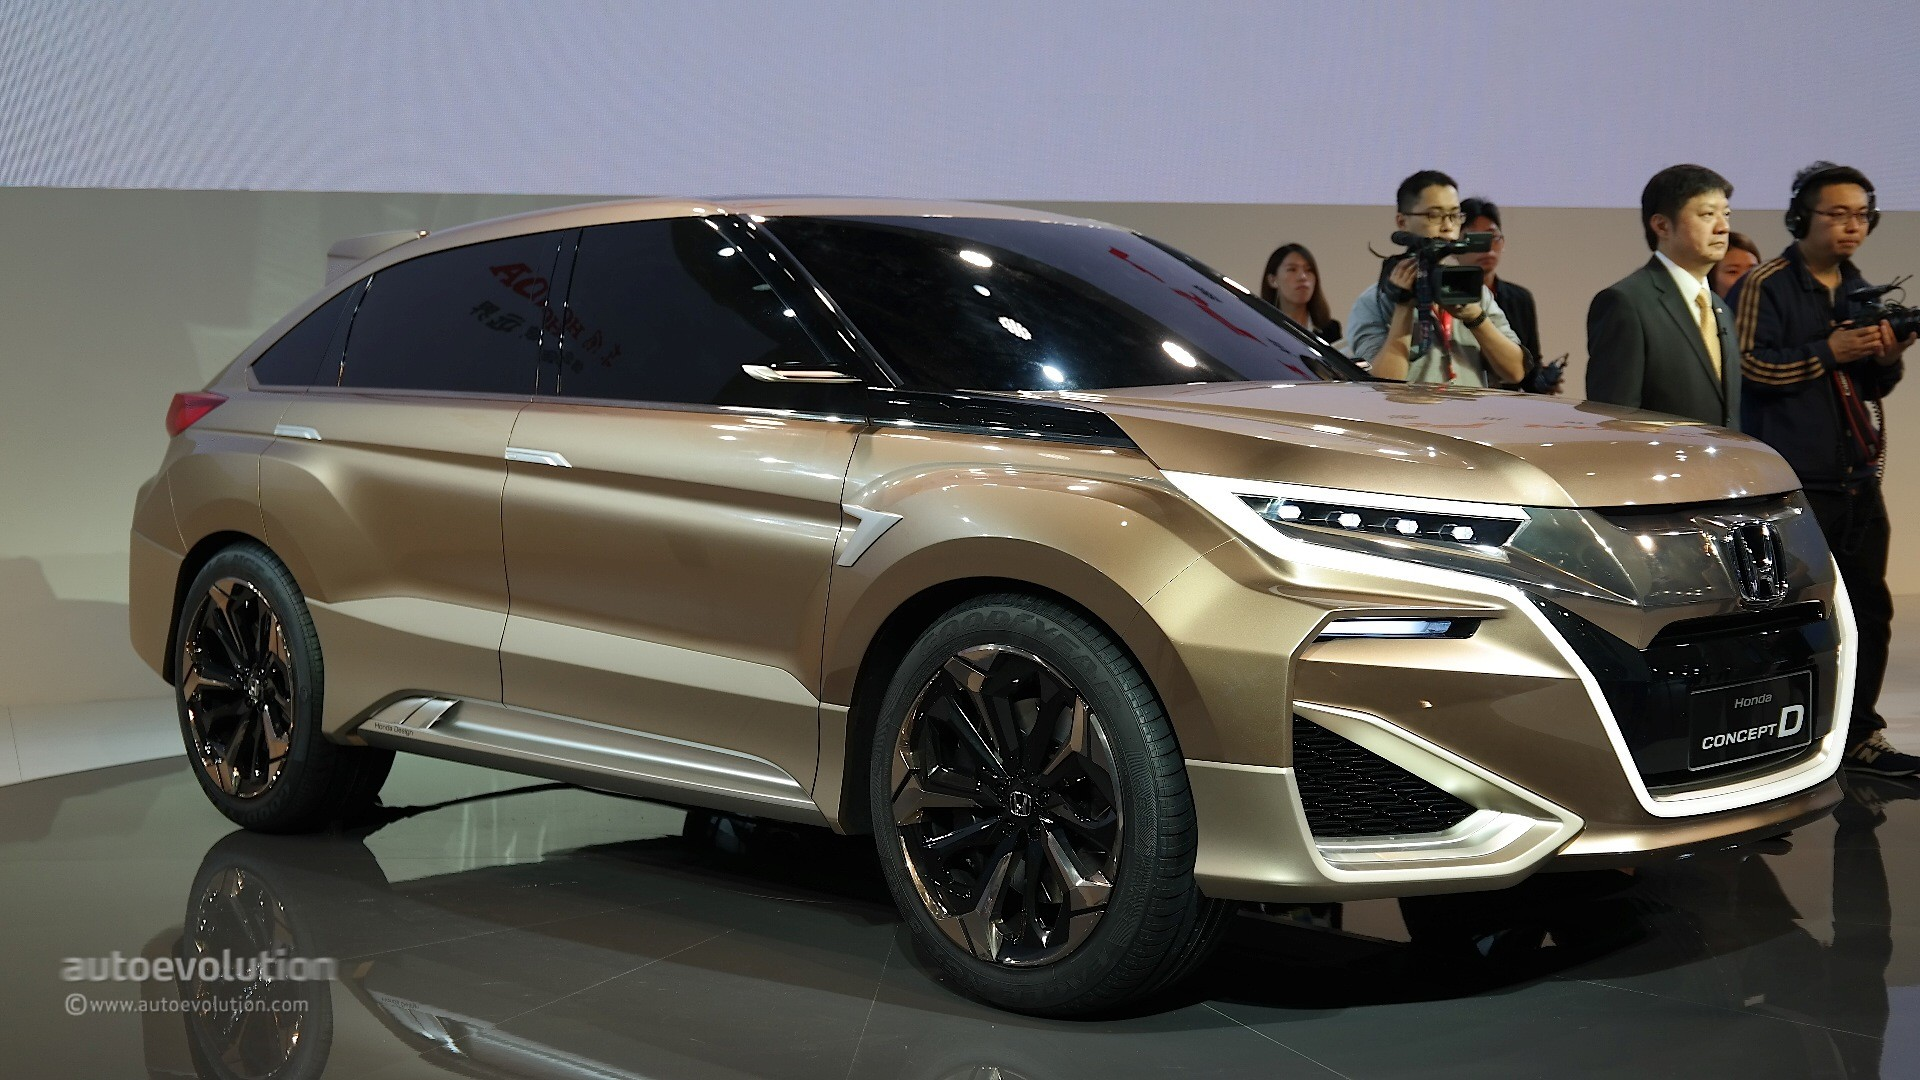 Dongfeng Honda Concept D Previews China-Only Crossover at ...